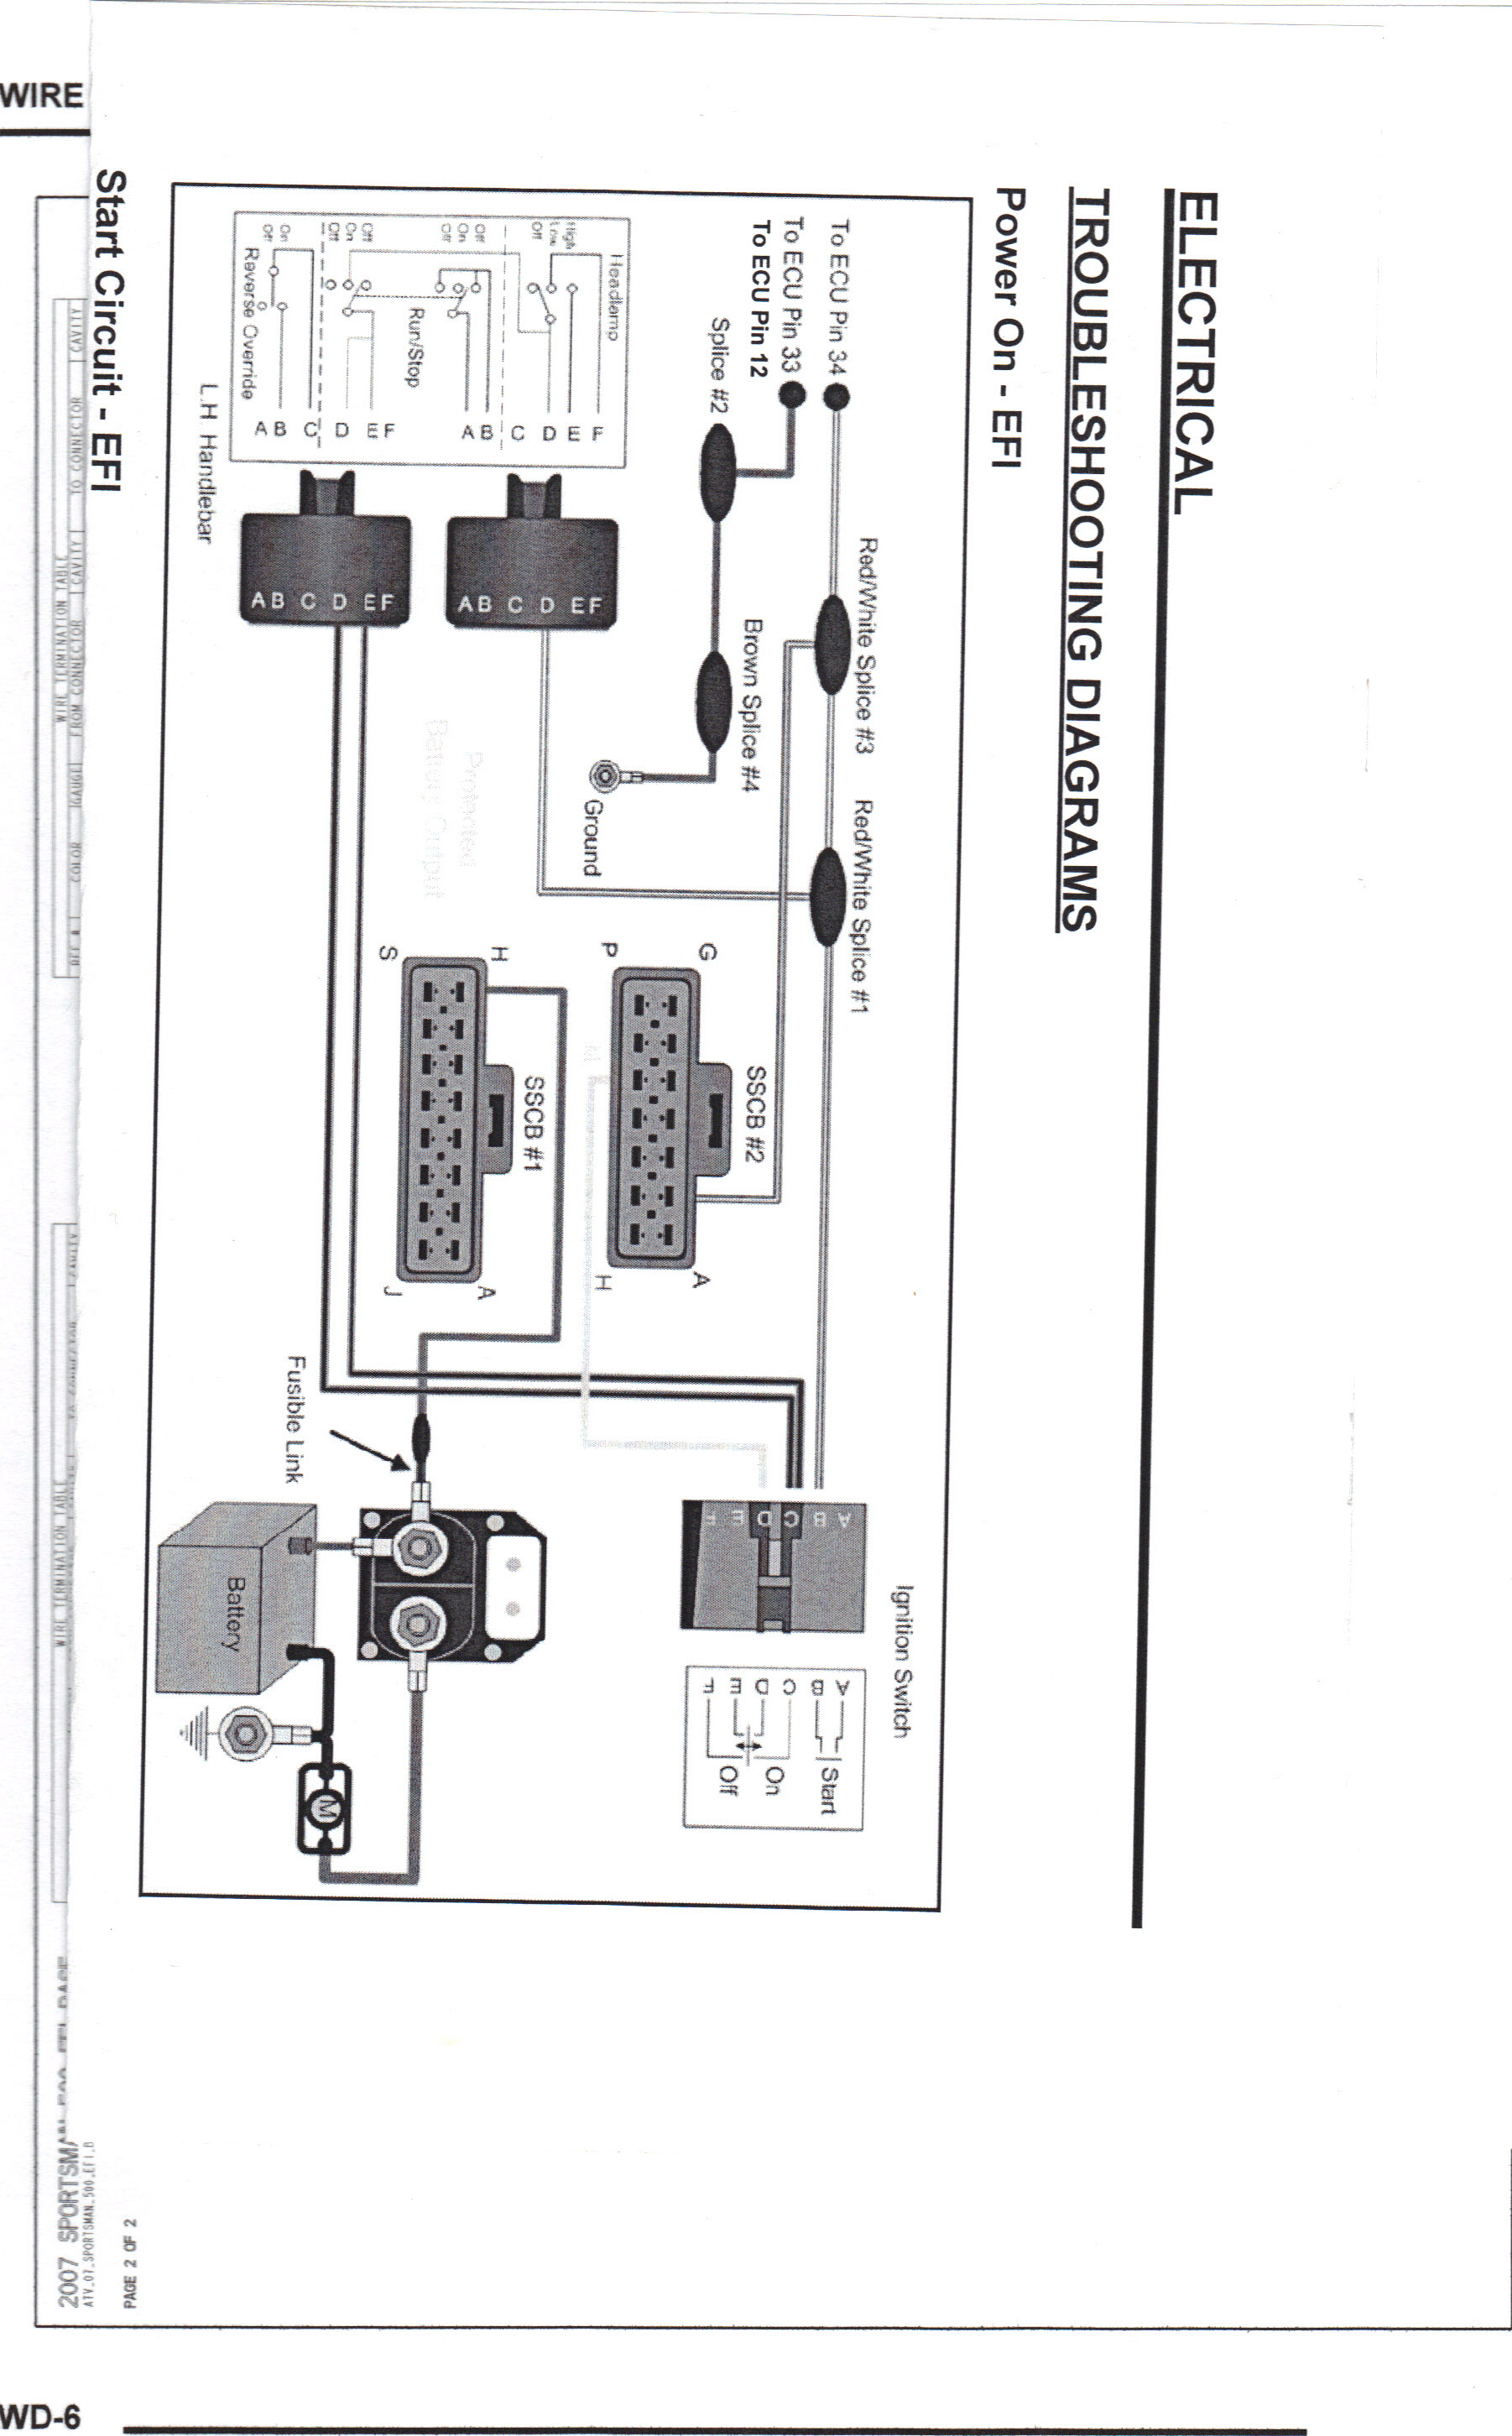 2005 polaris sportsman 500 ho wiring diagram schematic diagrams rh  ogmconsulting co Polaris Sportsman Wiring Schematic 2002 Polaris Sportsman  700 Wiring ...